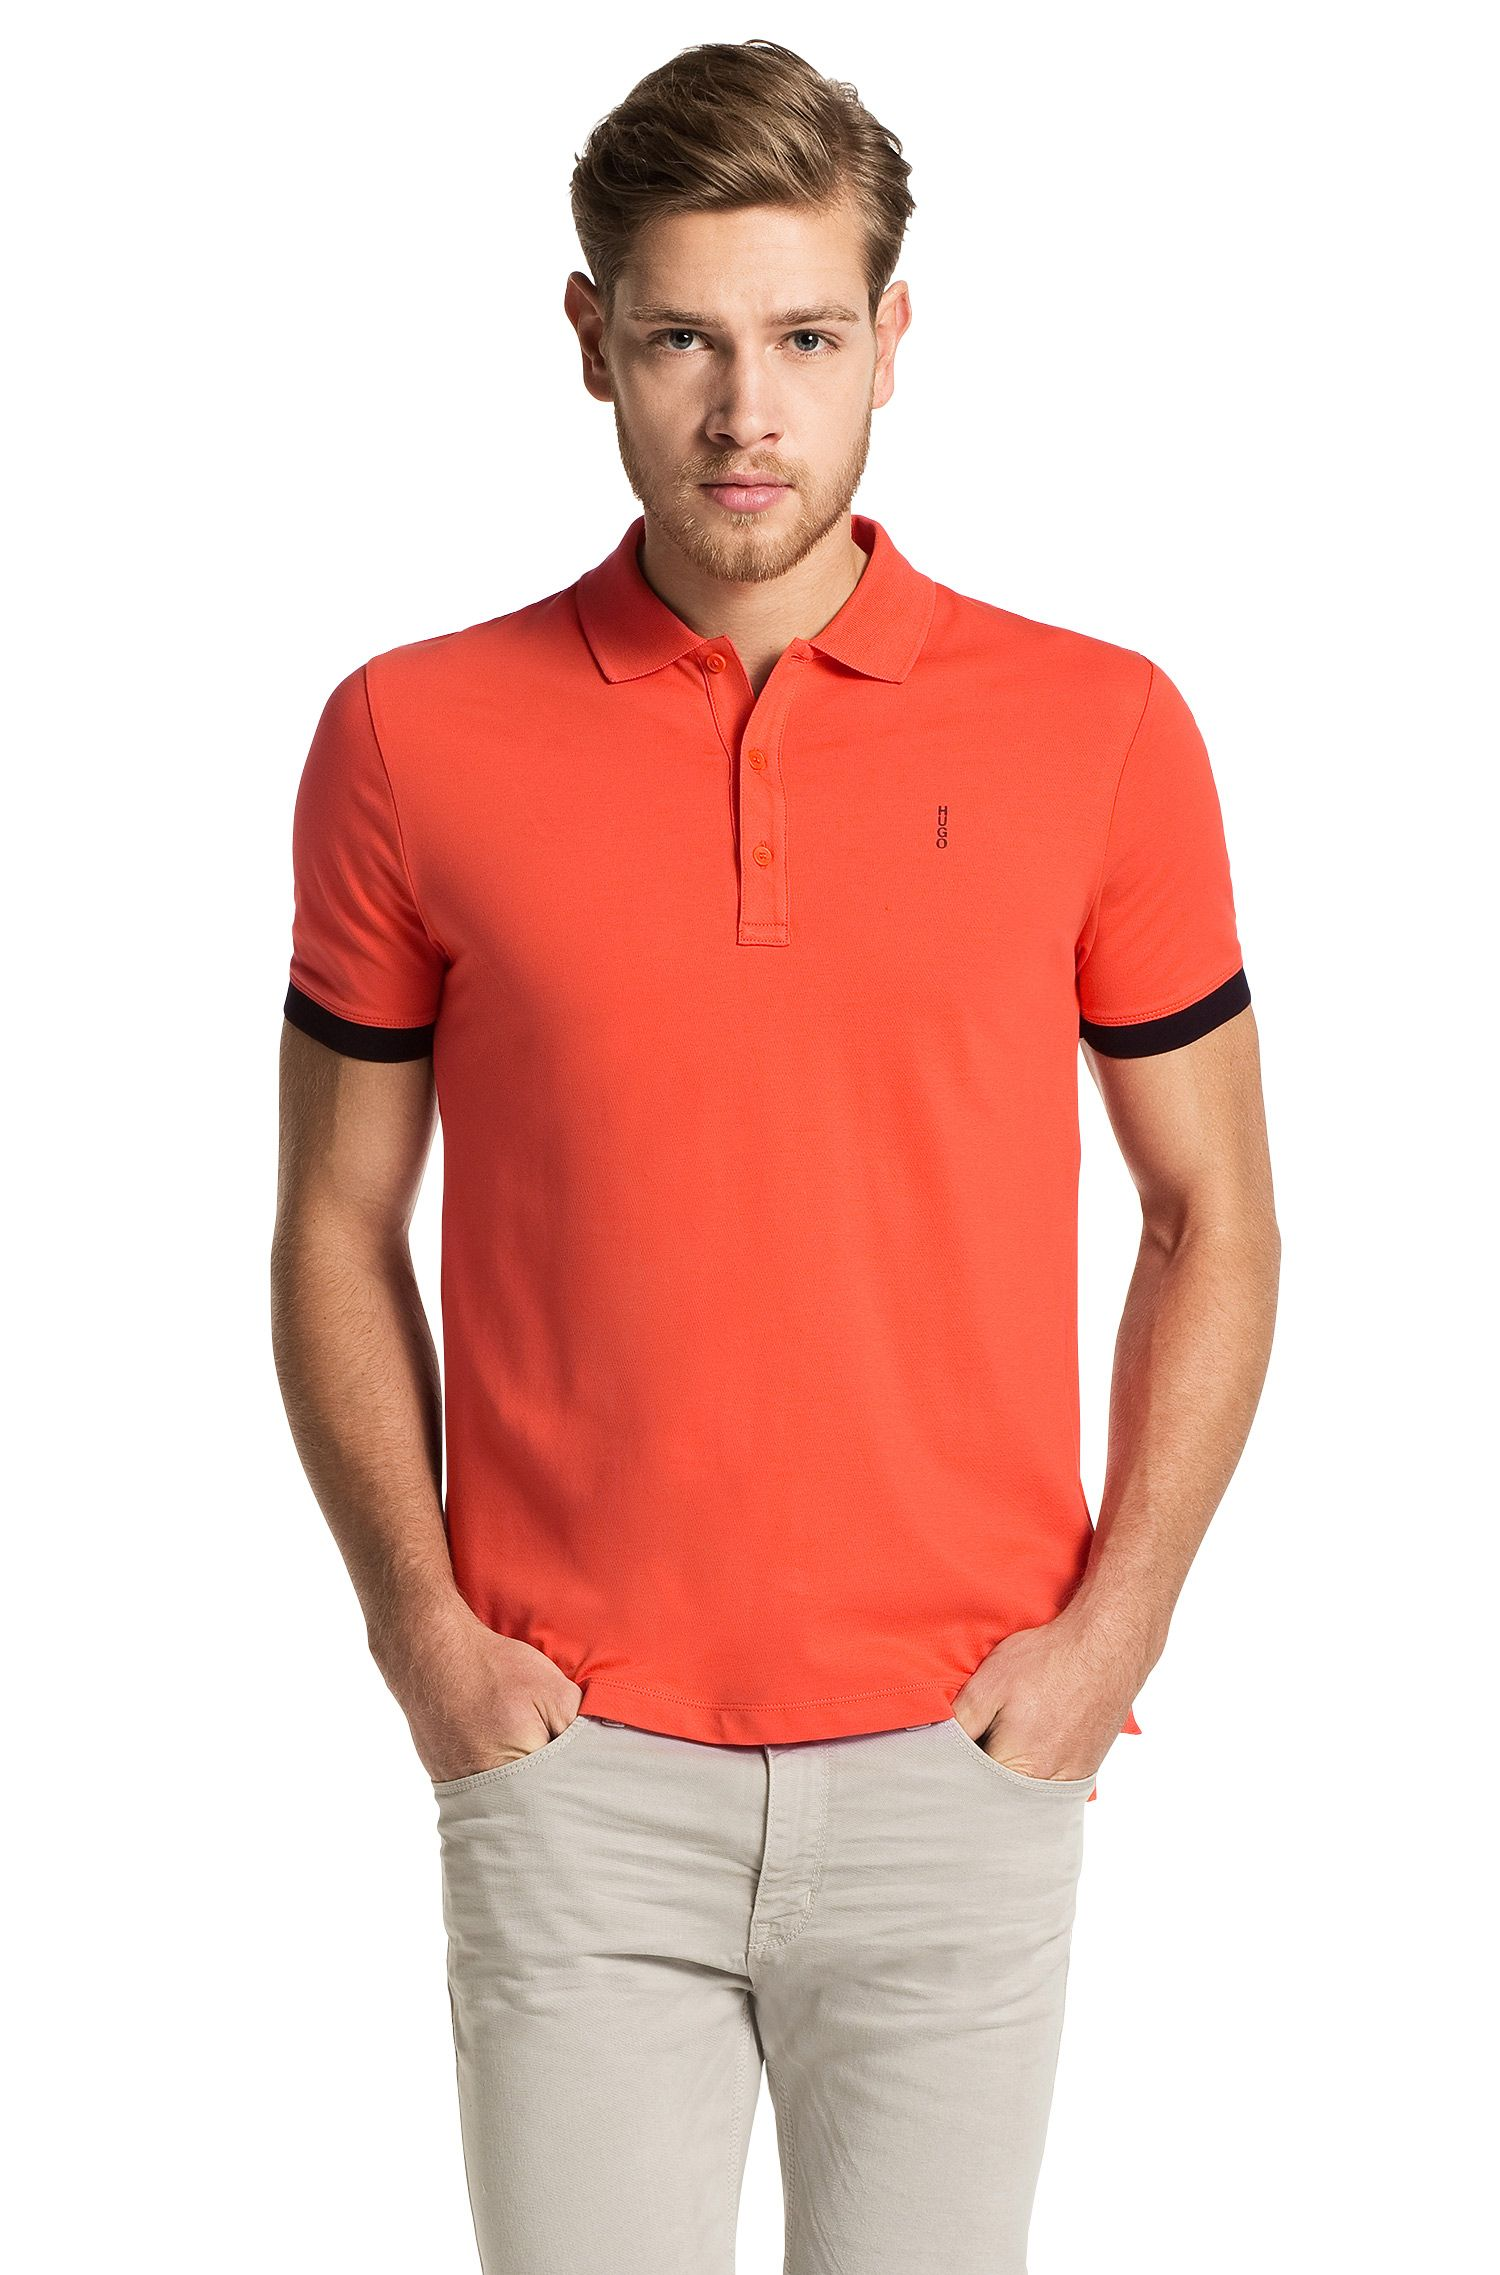 Regular-Fit Poloshirt aus Stretch-Baumwolle: 'Nono-C'